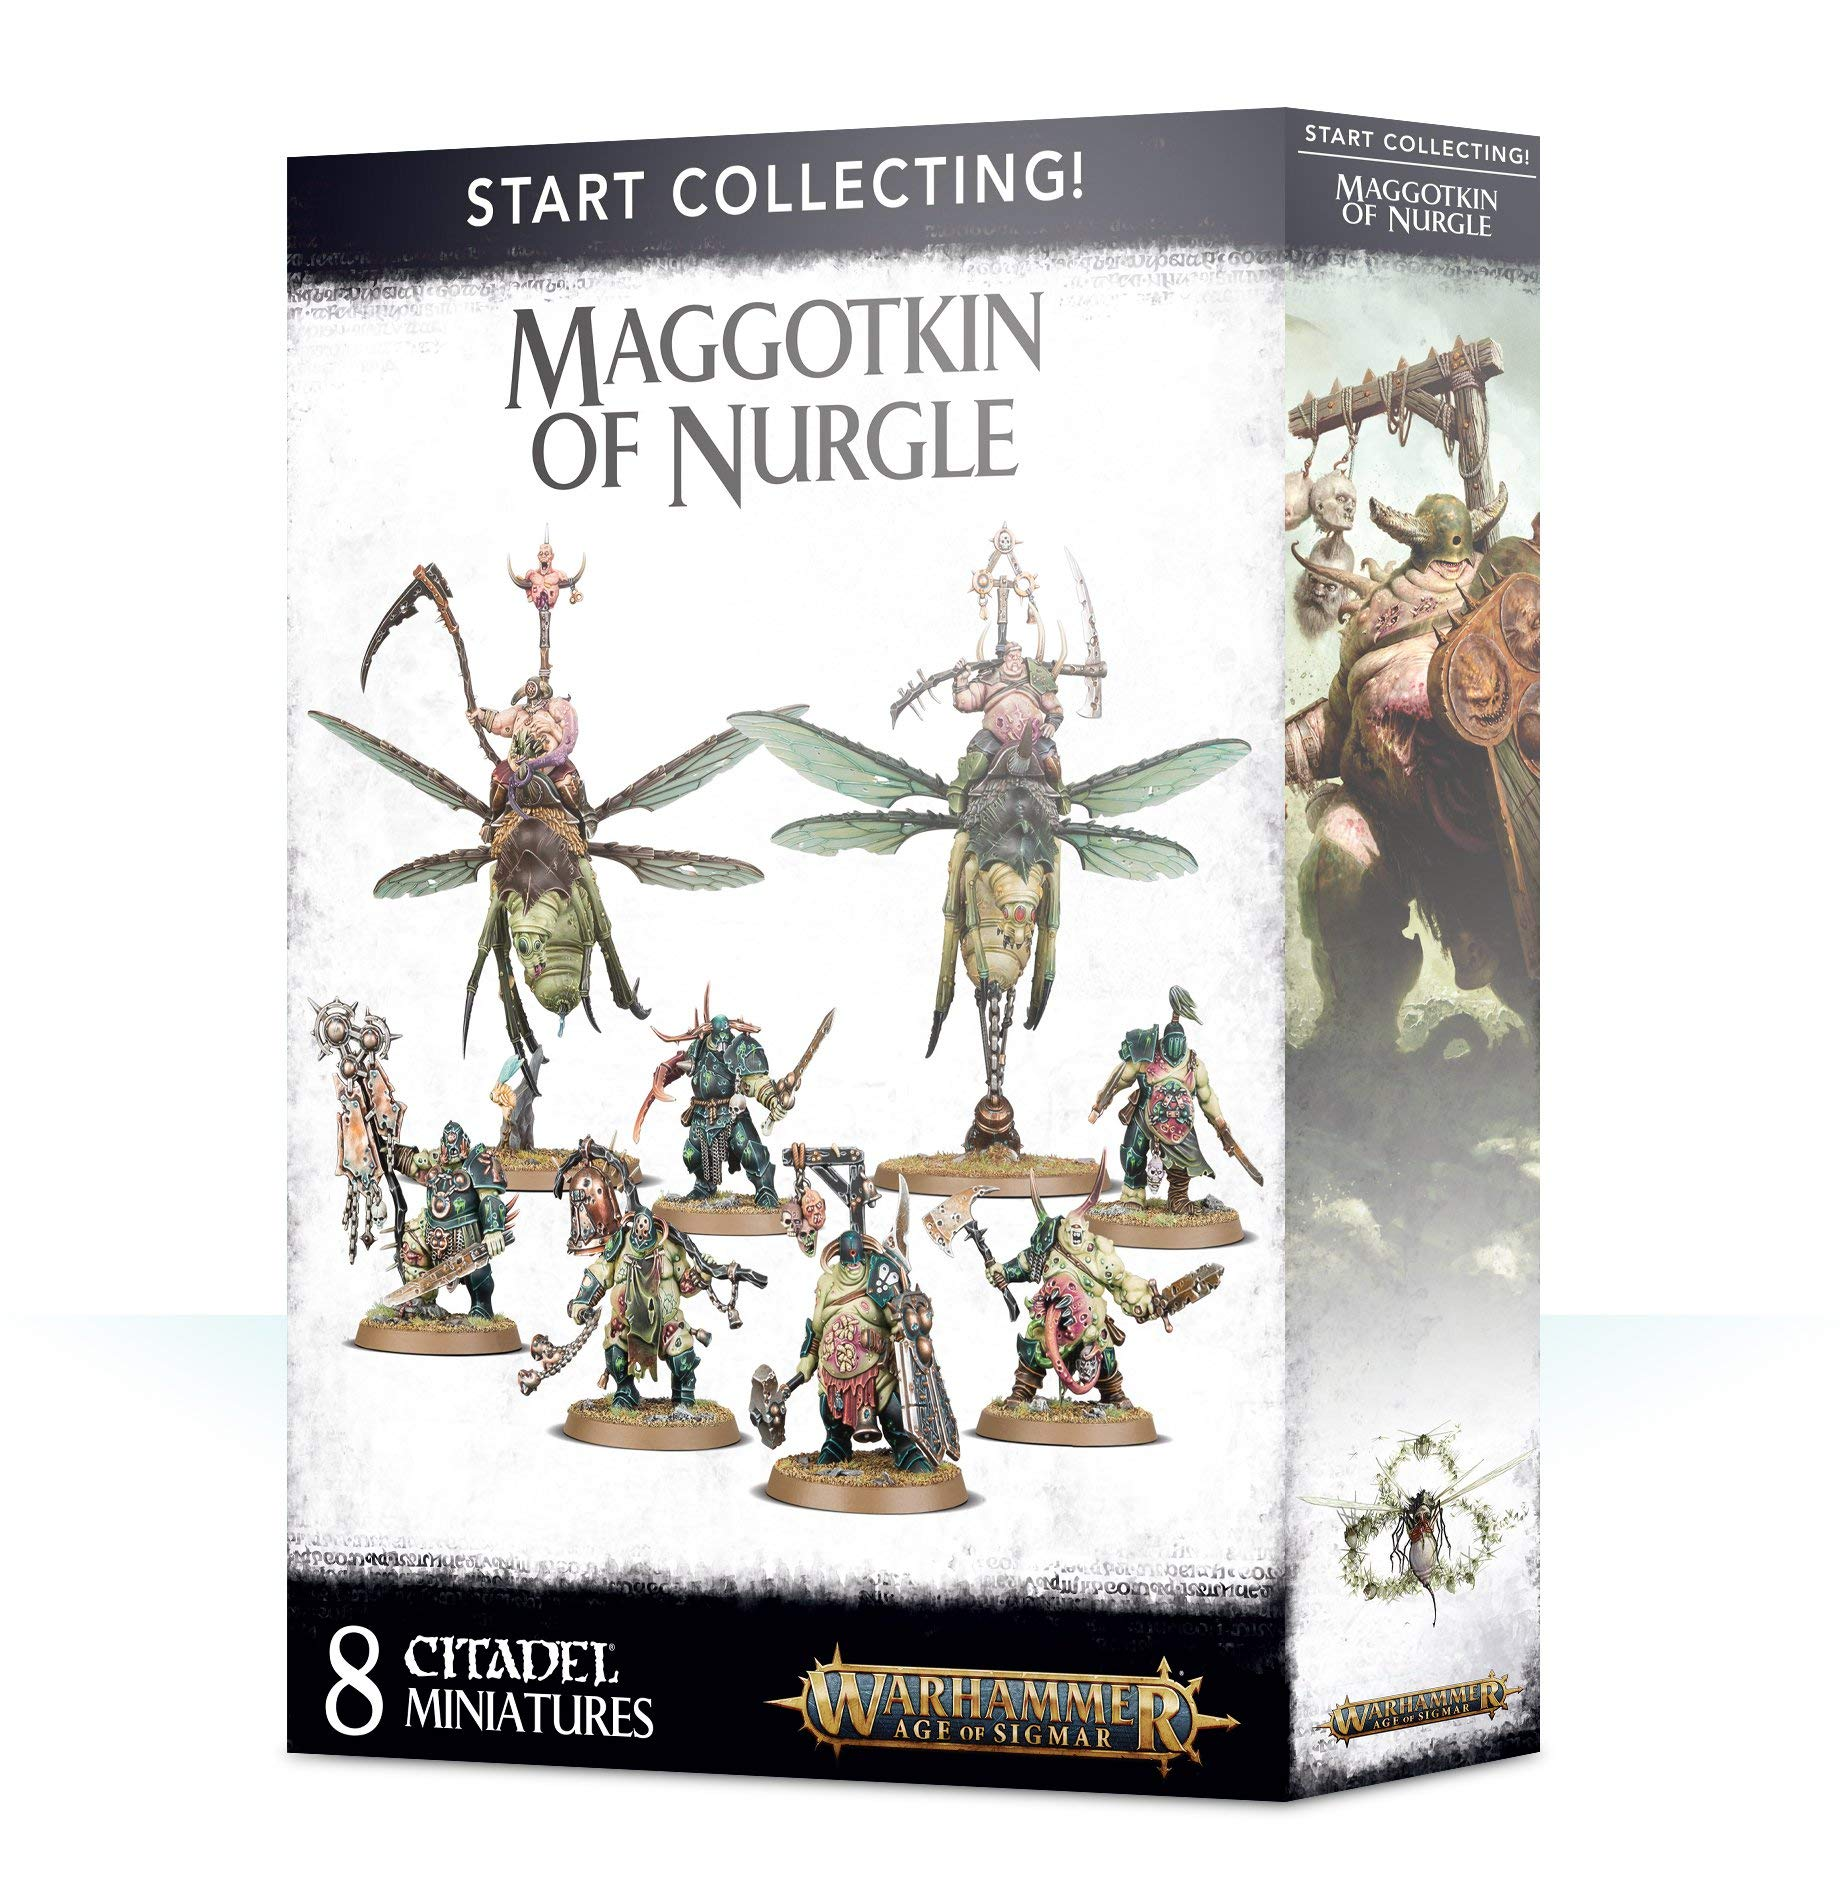 Warhammer: Age of Sigmar: Start Collecting! Maggotkin of Nurgle